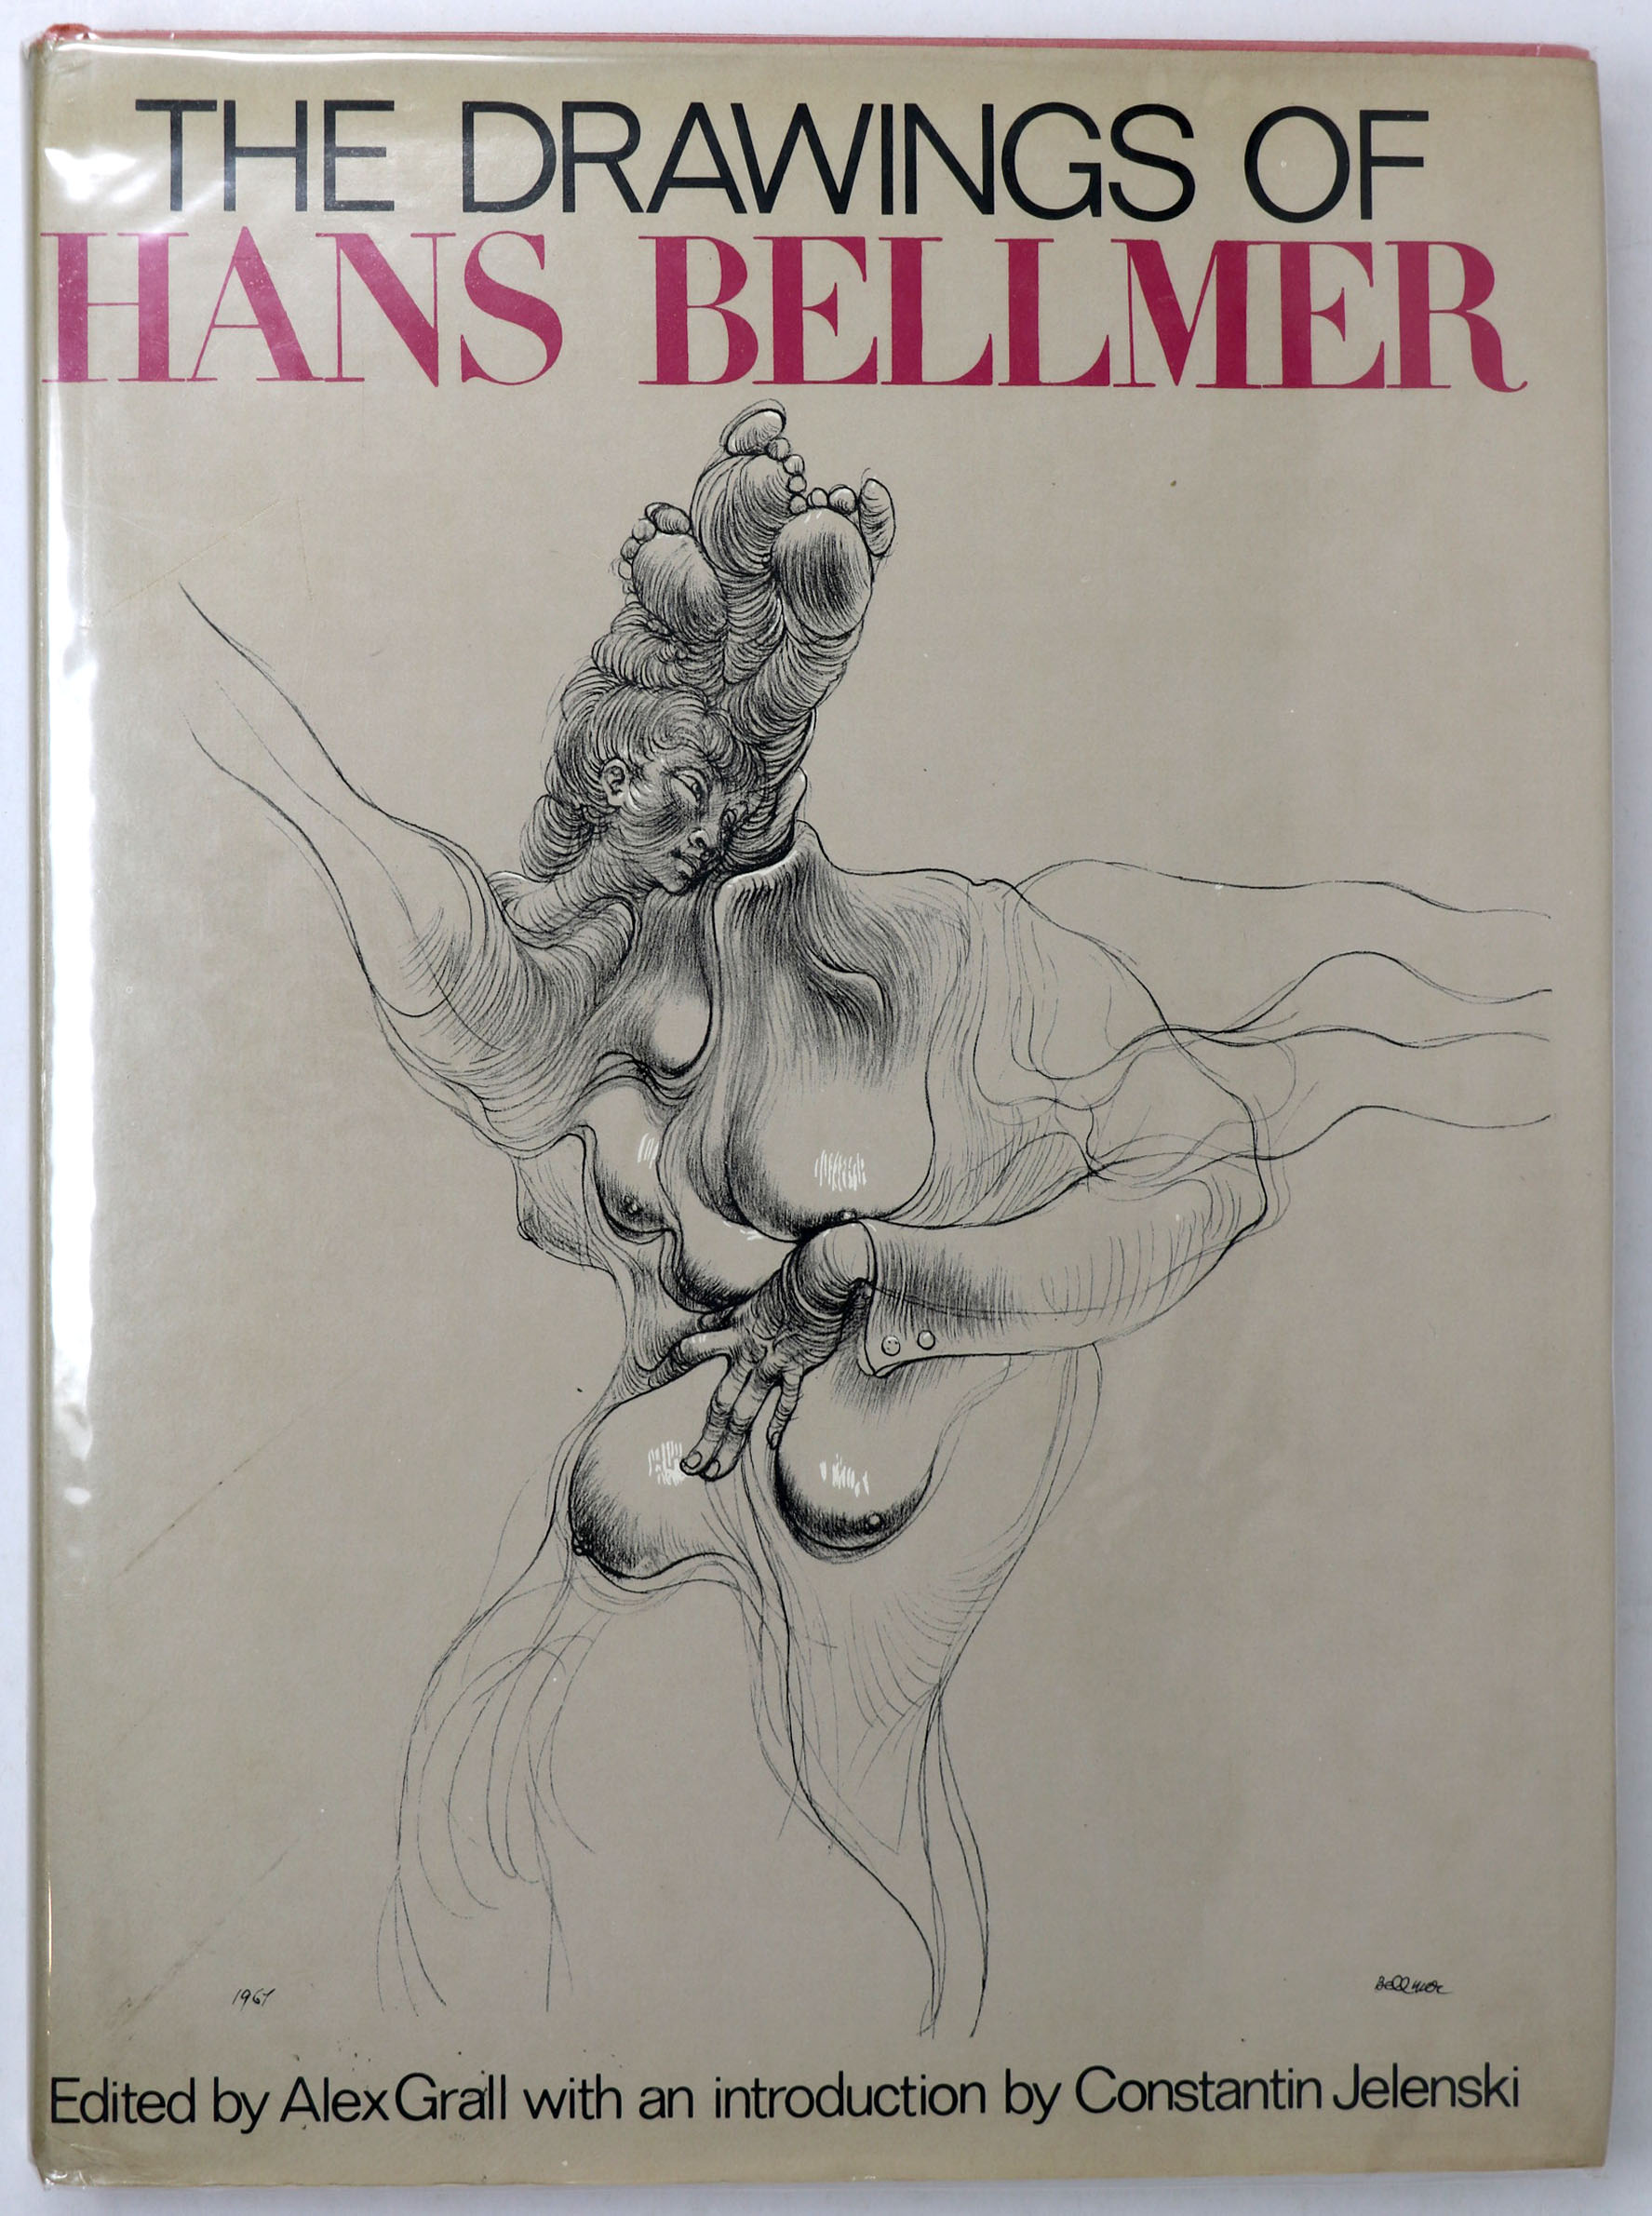 Hans Bellmer: The Drawings of Hans Bellmer